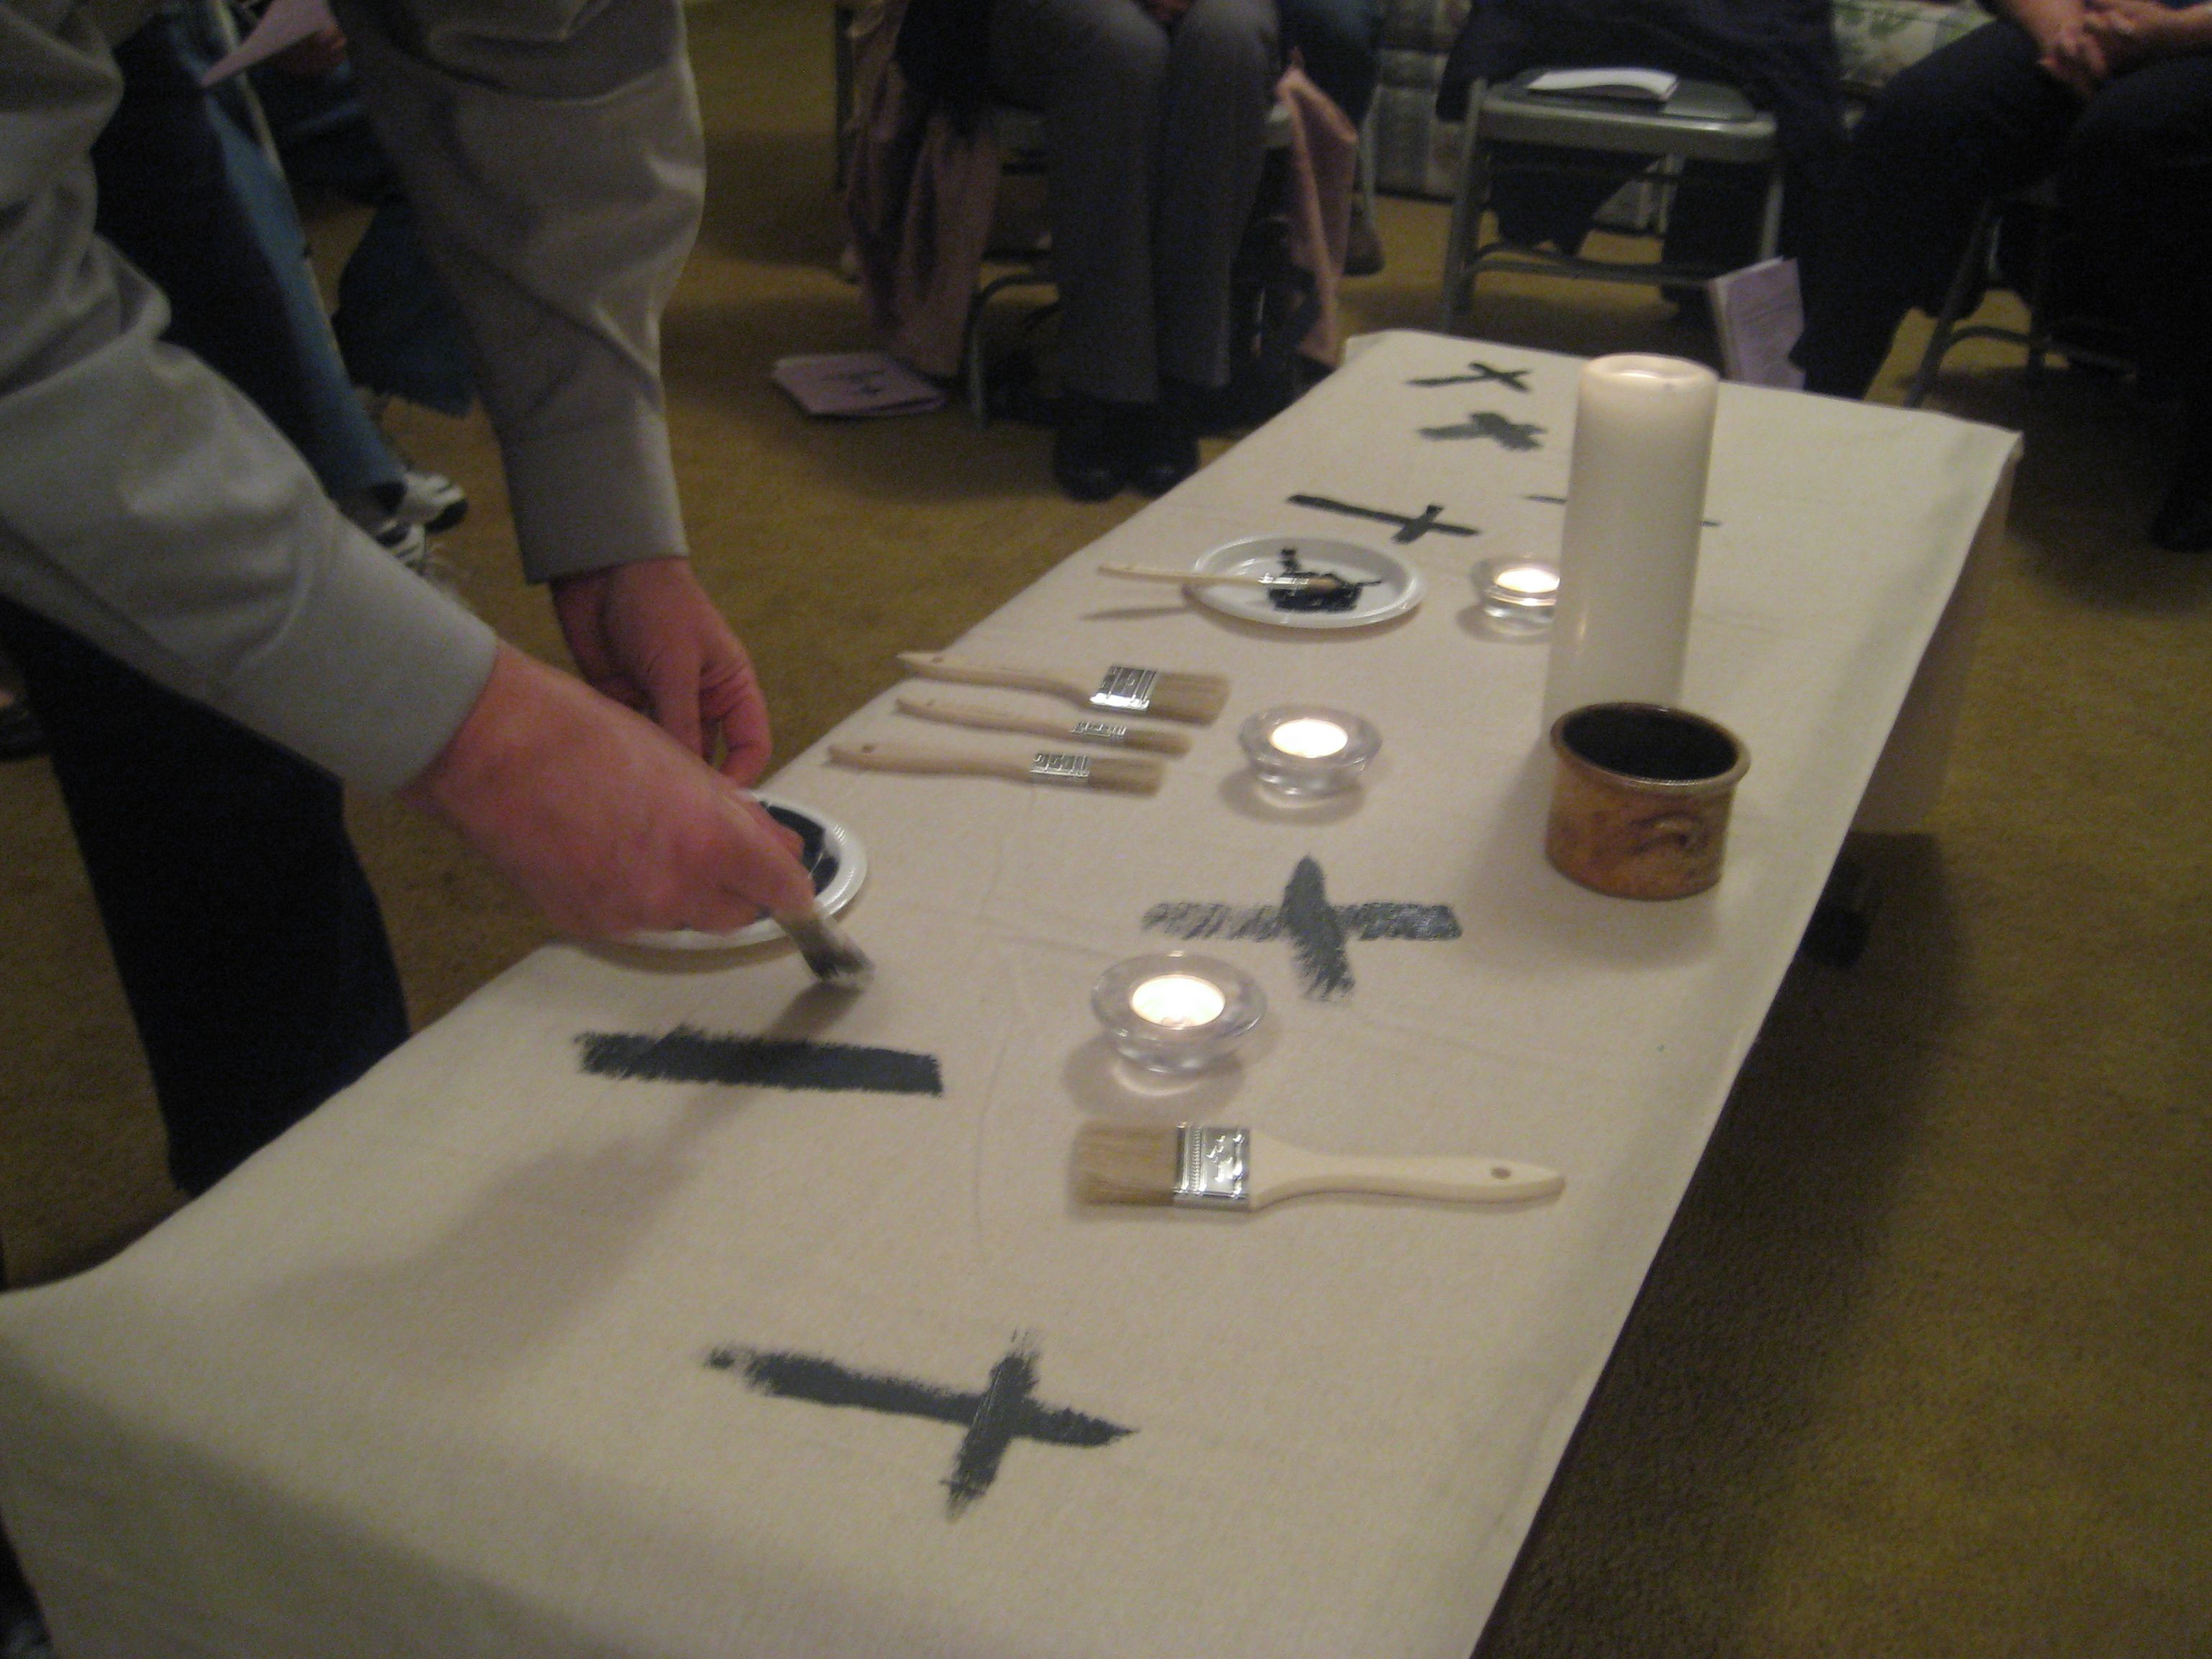 During Ash Wednesday Worship We Invited People To Paint A Cross On The Tablecloth And Placed It